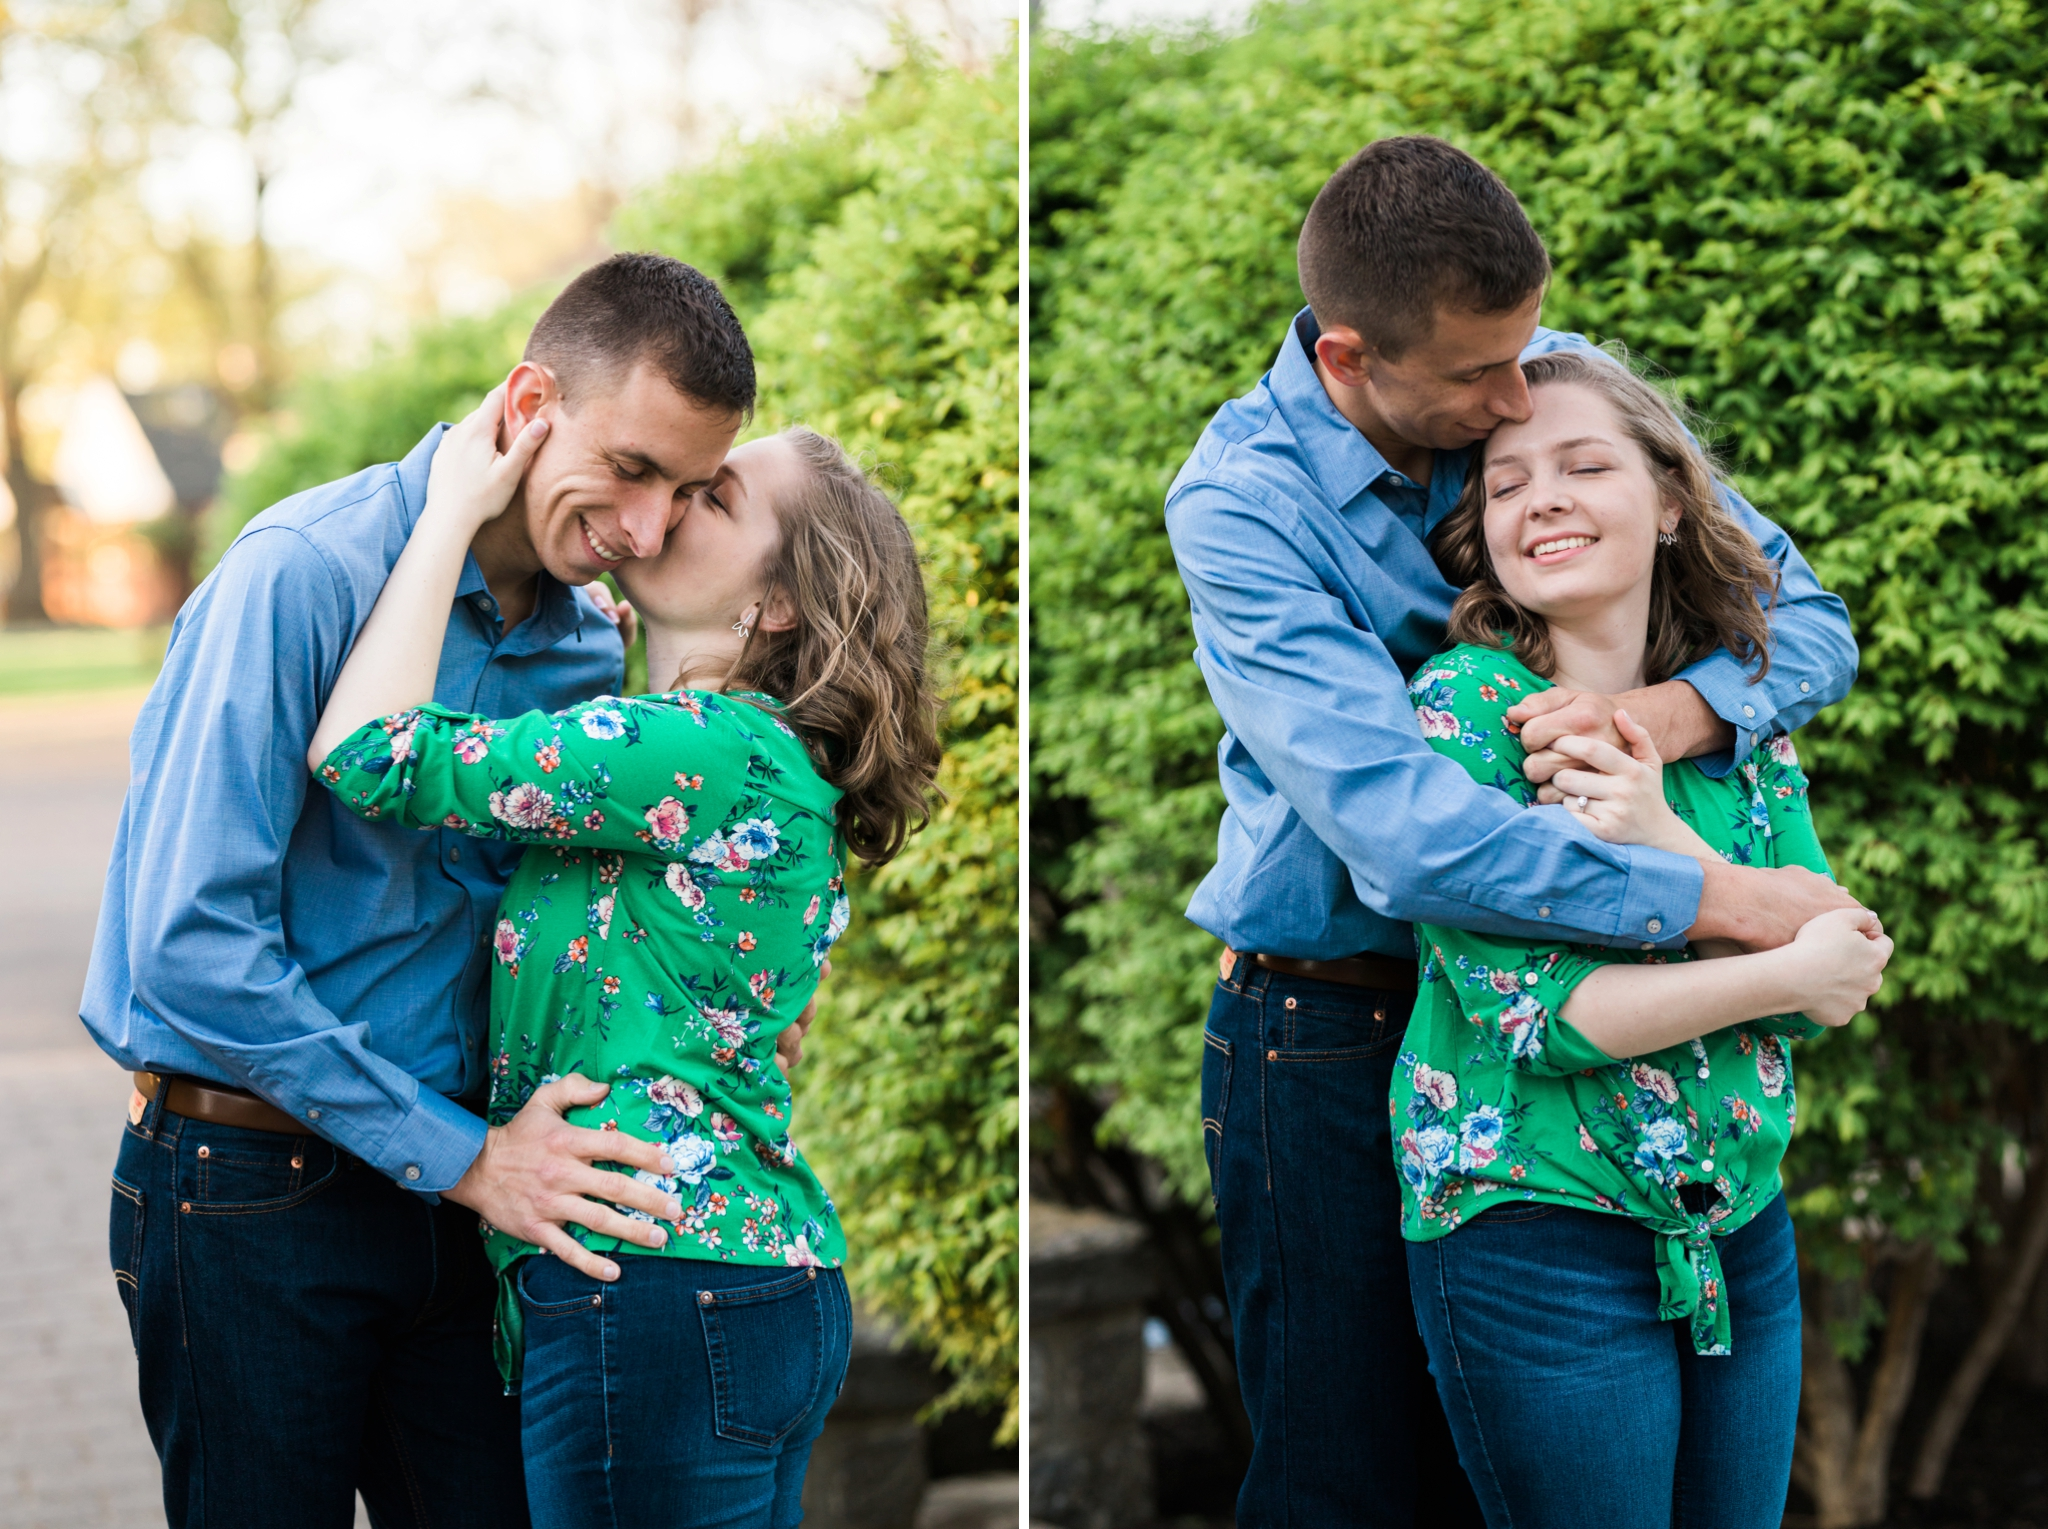 Emily Grace Photography, Lancaster PA Wedding Photograper for Non-Traditional Couples, Lititz Spring Park Engagement Photos